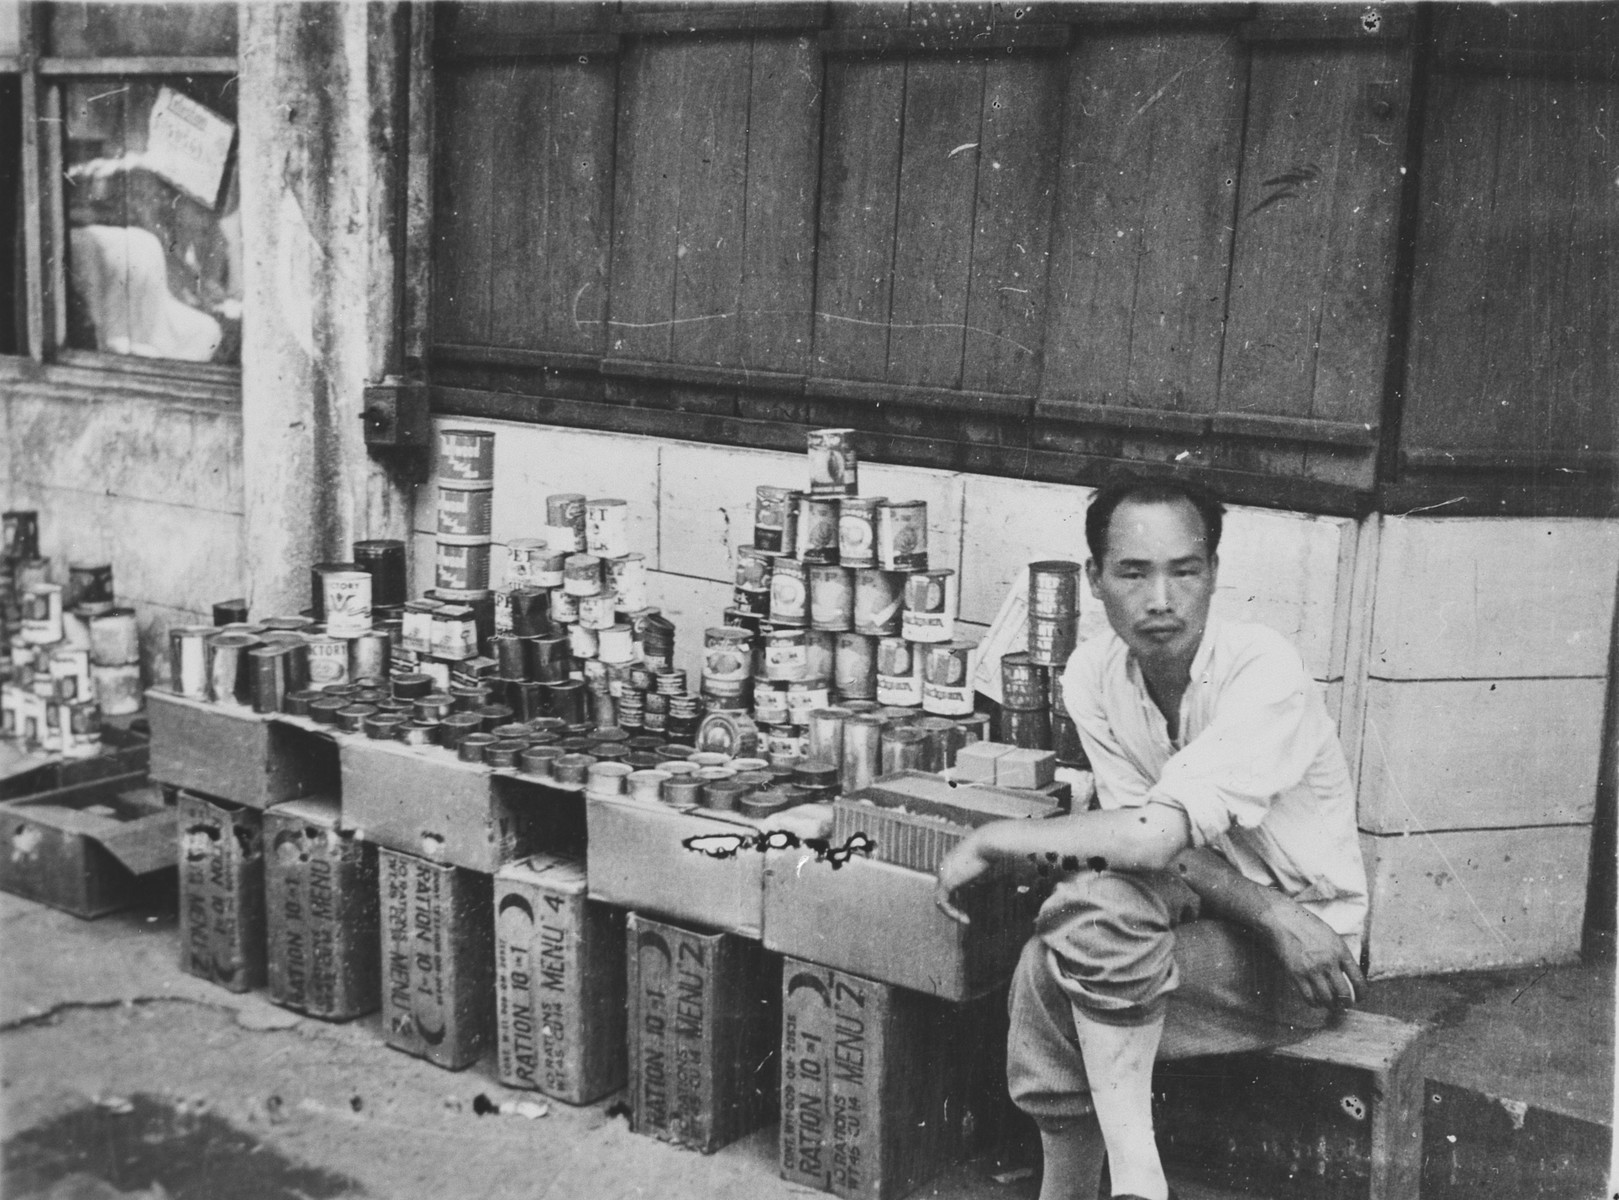 A Chinese merchant sits next to his wares on a sidewalk in Shanghai.